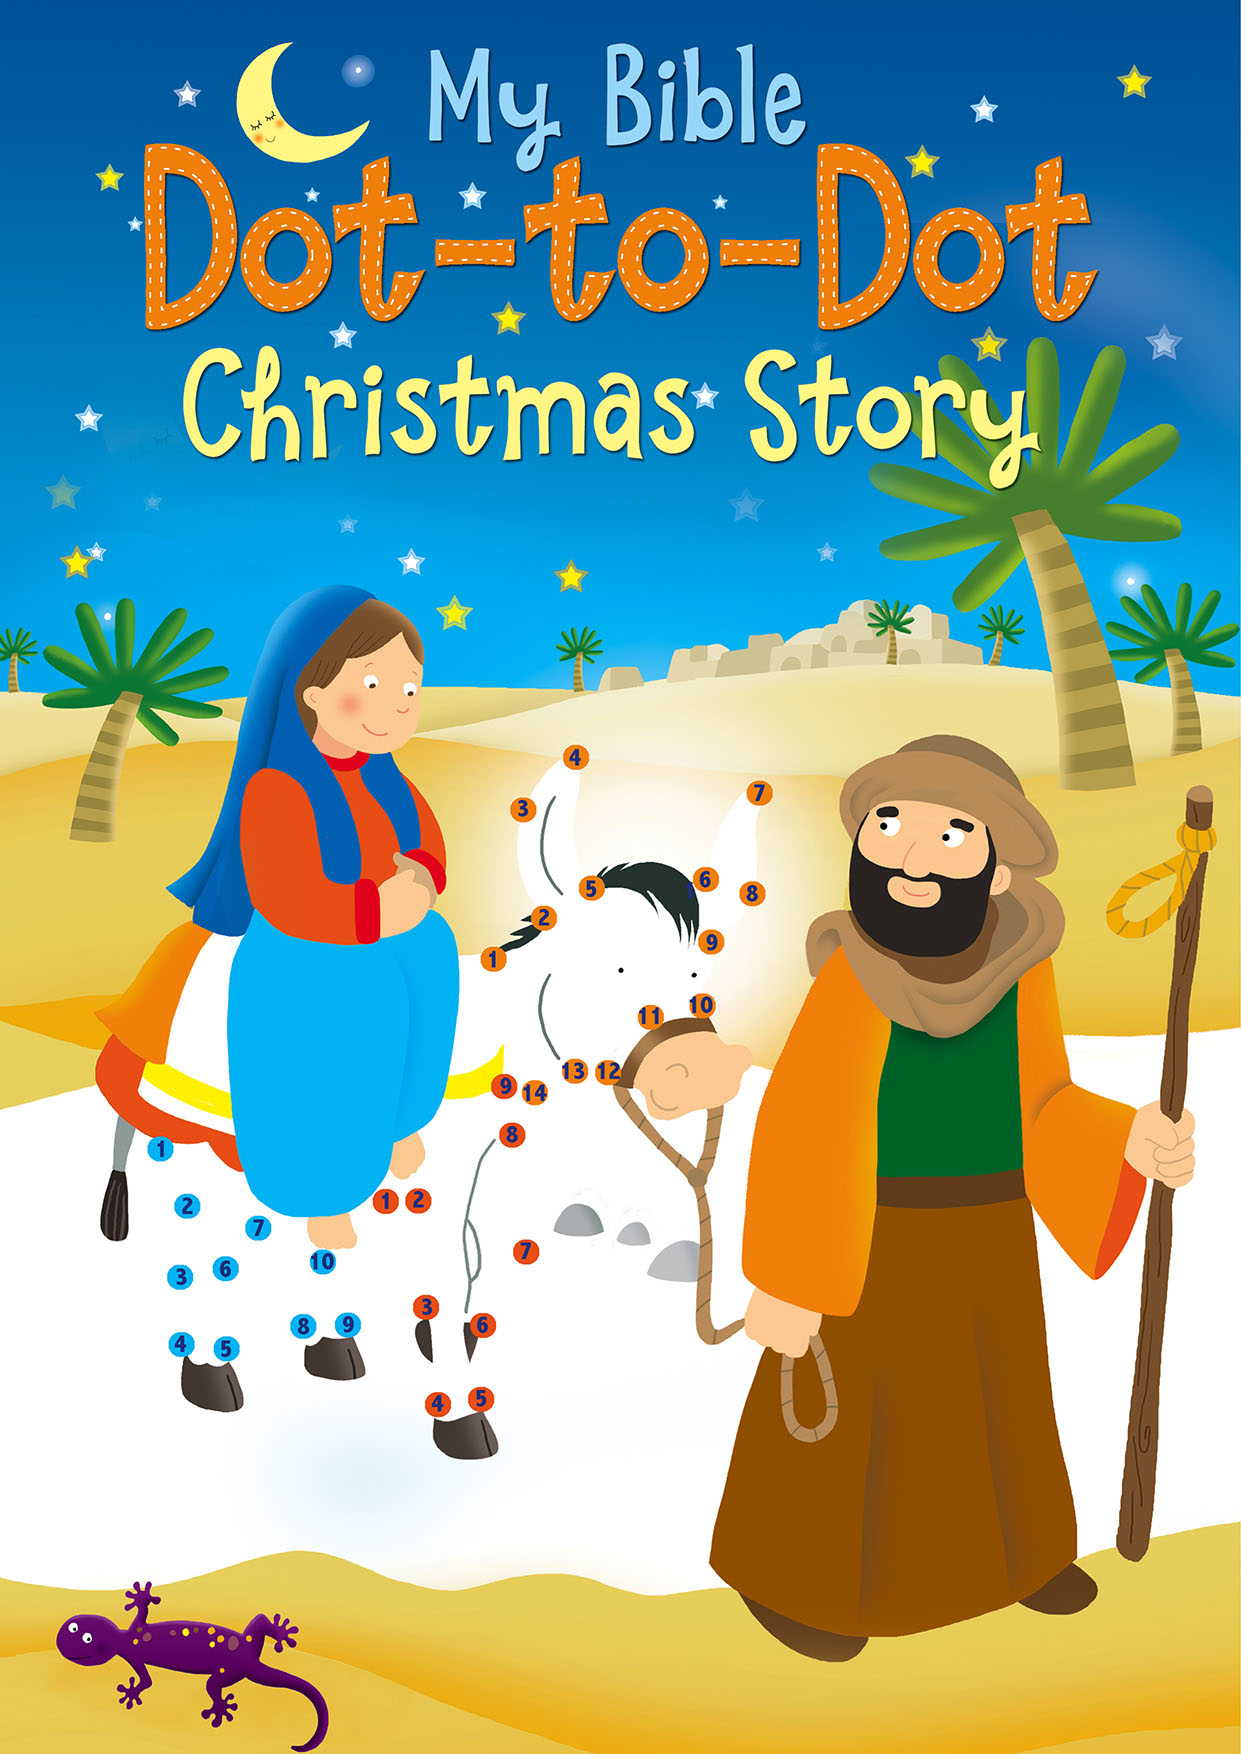 My Bible Dot-to-Dot Christmas Story